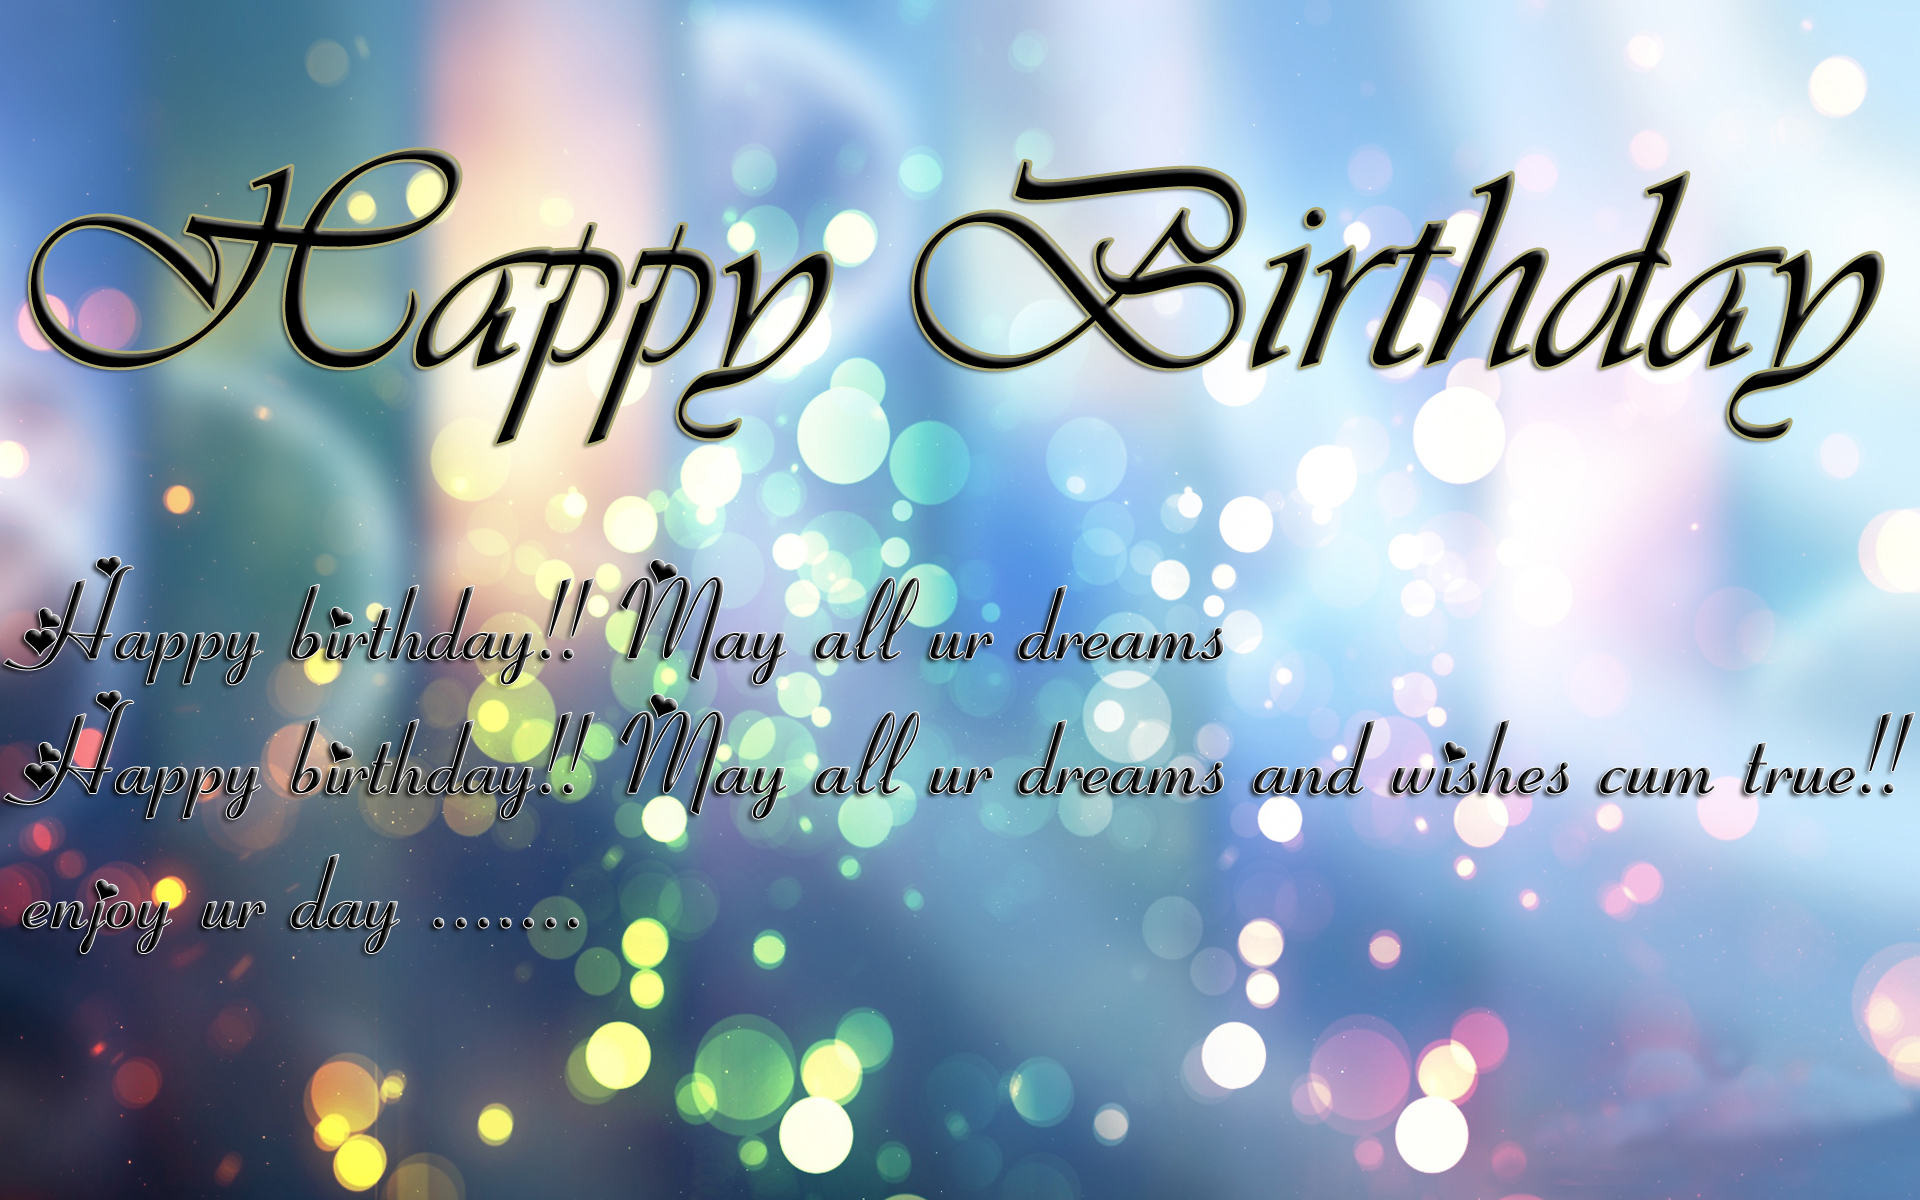 excellent birthday quotes ; Happy-birthday-wishes